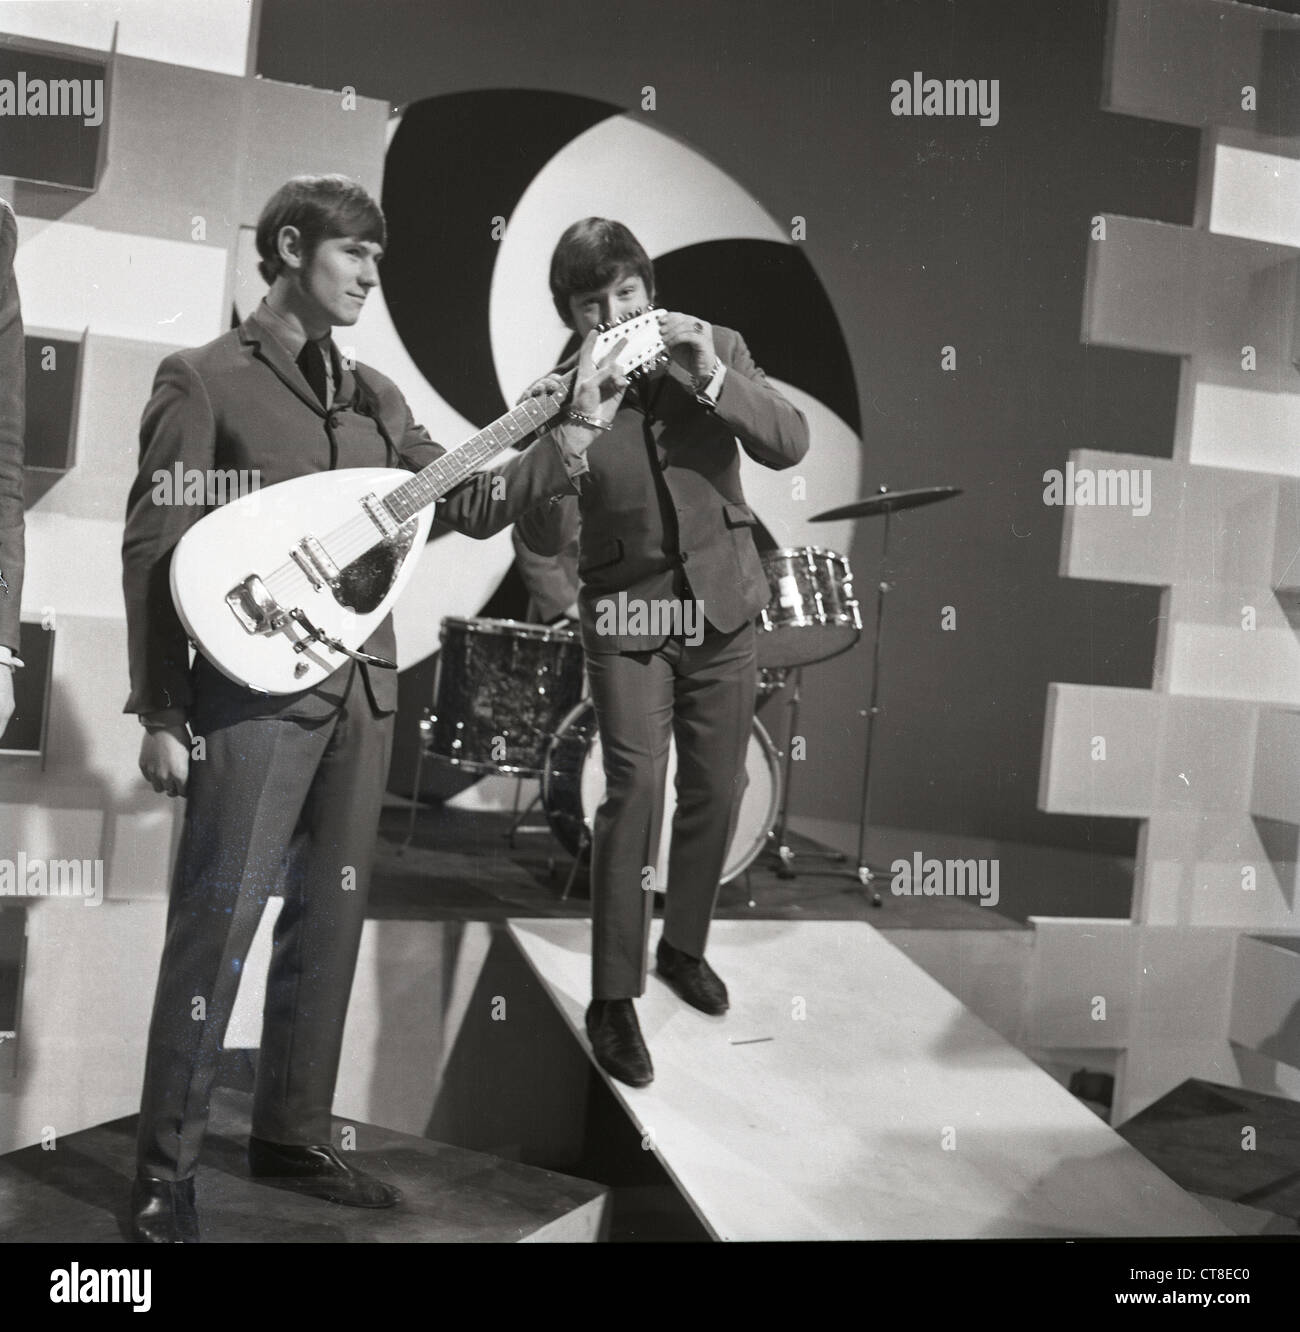 Image of: Newcastle 006892 Eric Burdon And Hilton Valentine Of The Animals On Top Of The Pops In 1964 Alamy 006892 Eric Burdon And Hilton Valentine Of The Animals On Top Of